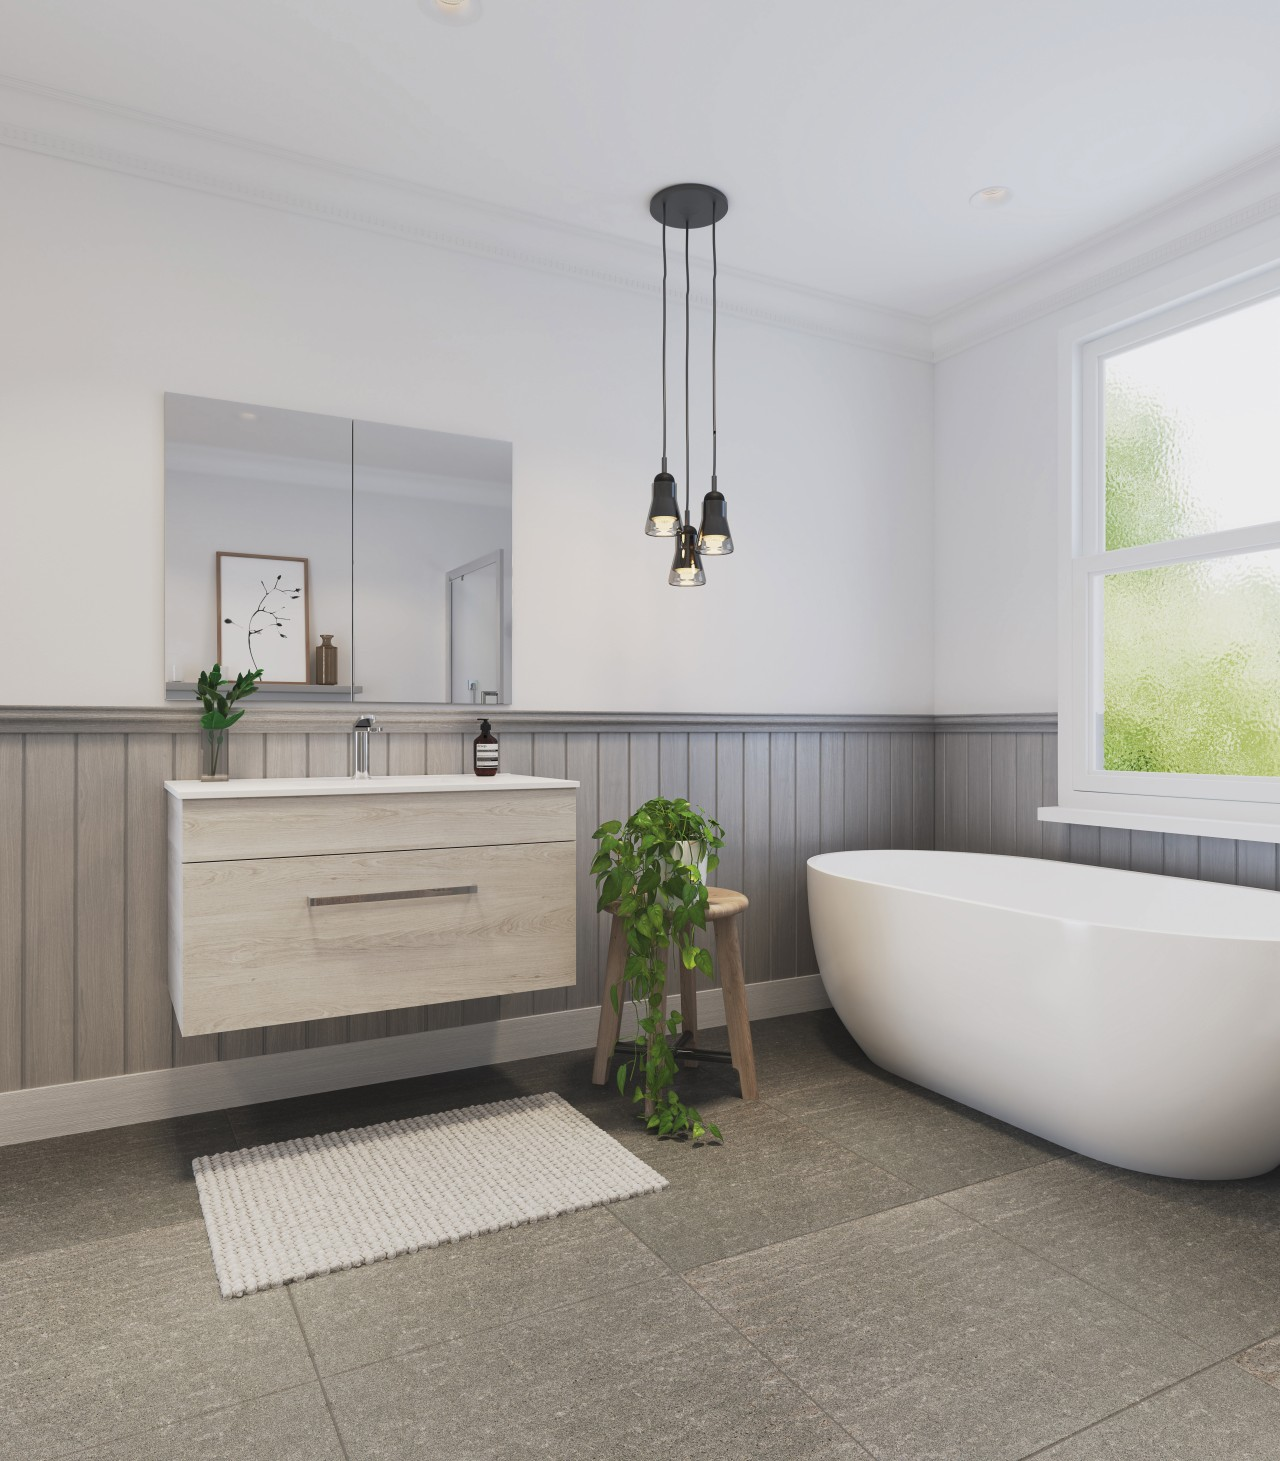 Decorating is a low-commitment way of renovating your bathroom, bathroom accessory, floor, flooring, interior design, plumbing fixture, product, room, sink, tap, tile, gray